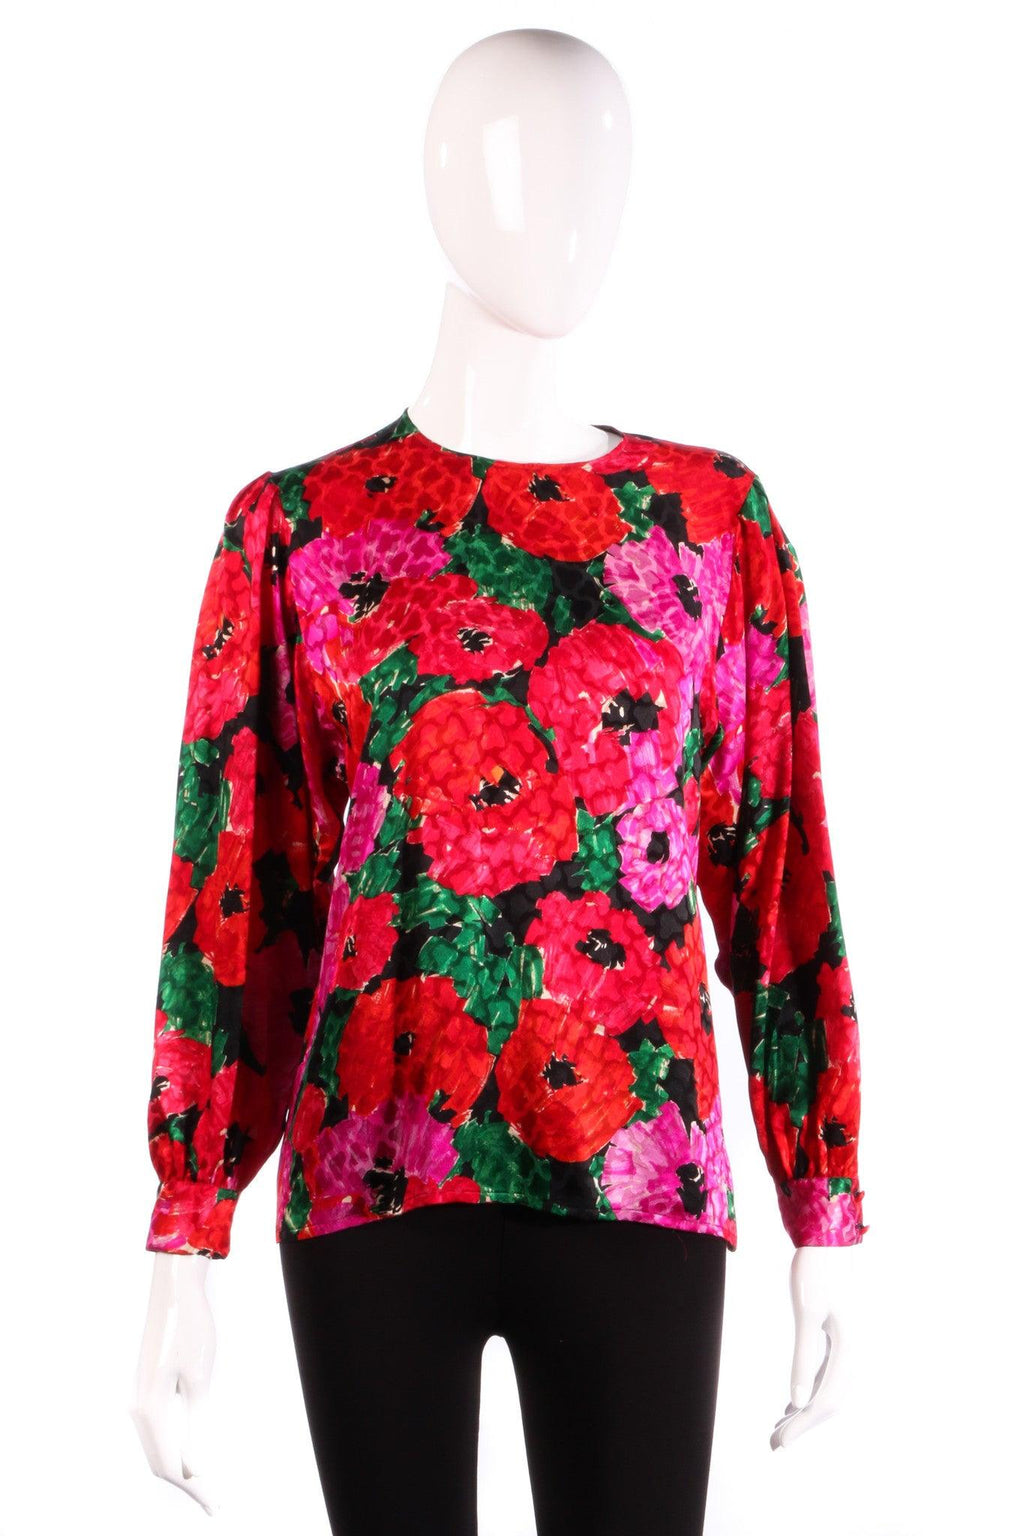 Jaeger Silk Blouse Pink and Red Floral UK Size 12/14